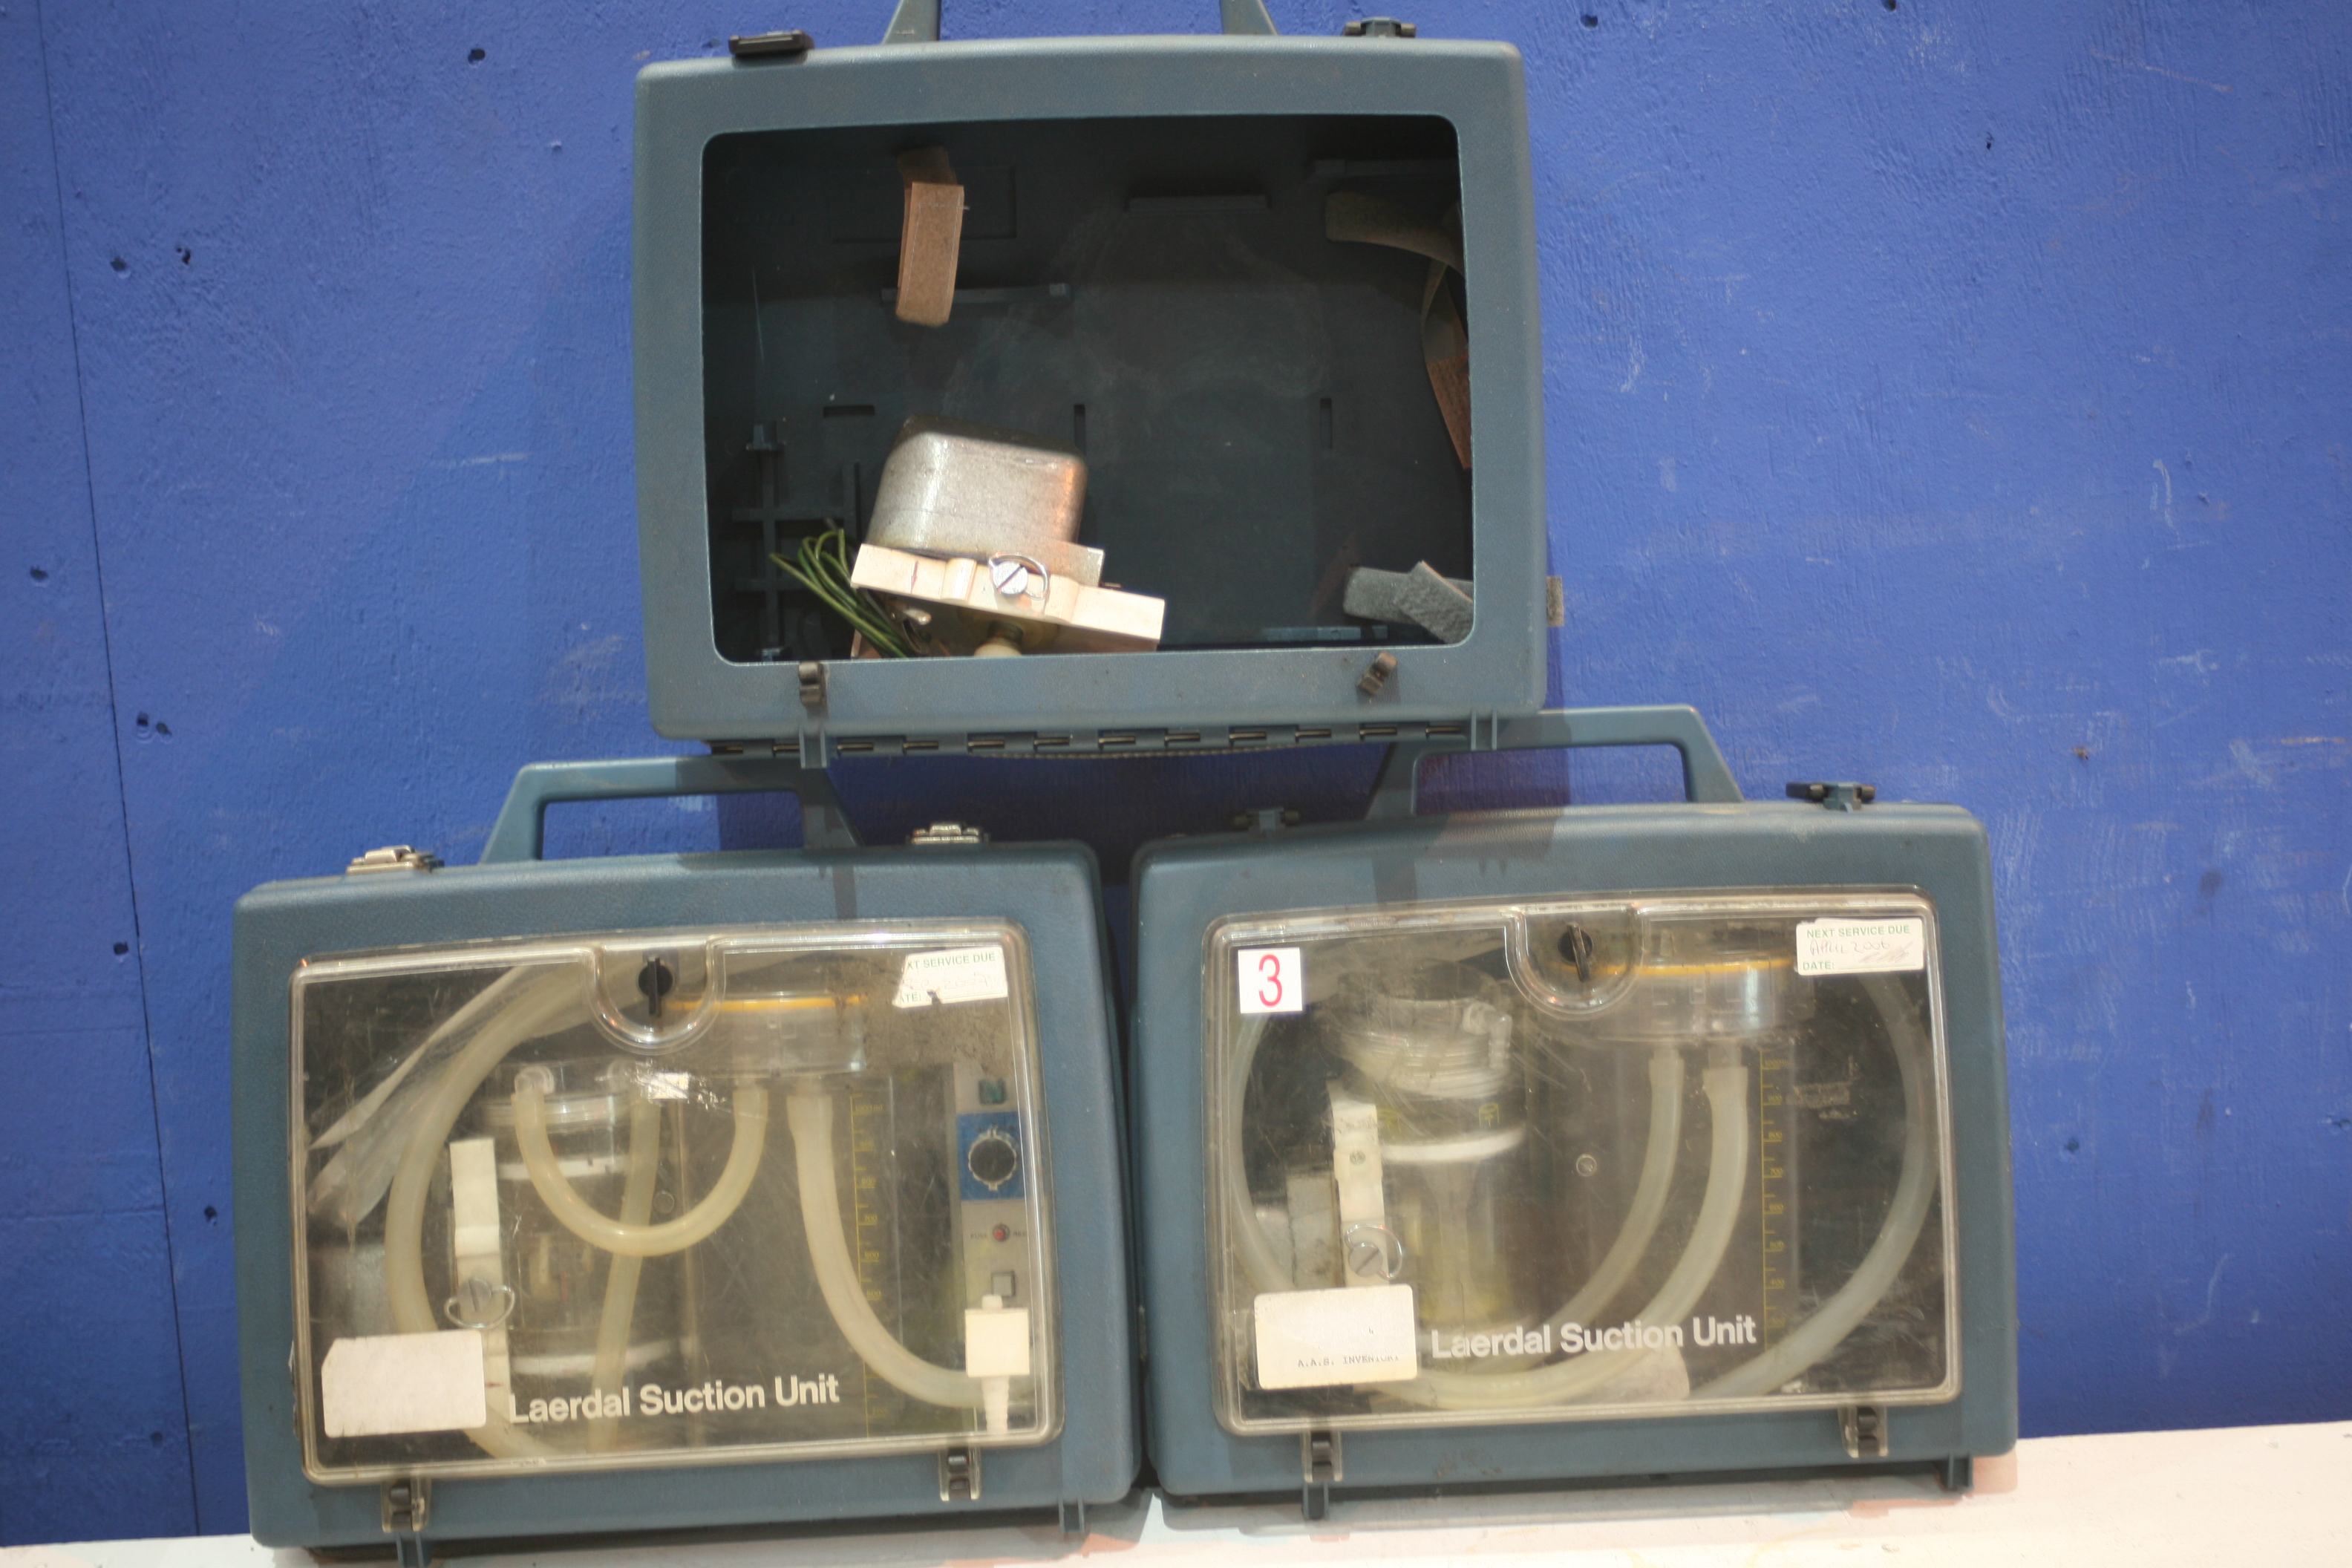 Lot 214 - 3x Laerdal Suction Unit (1x Damage)